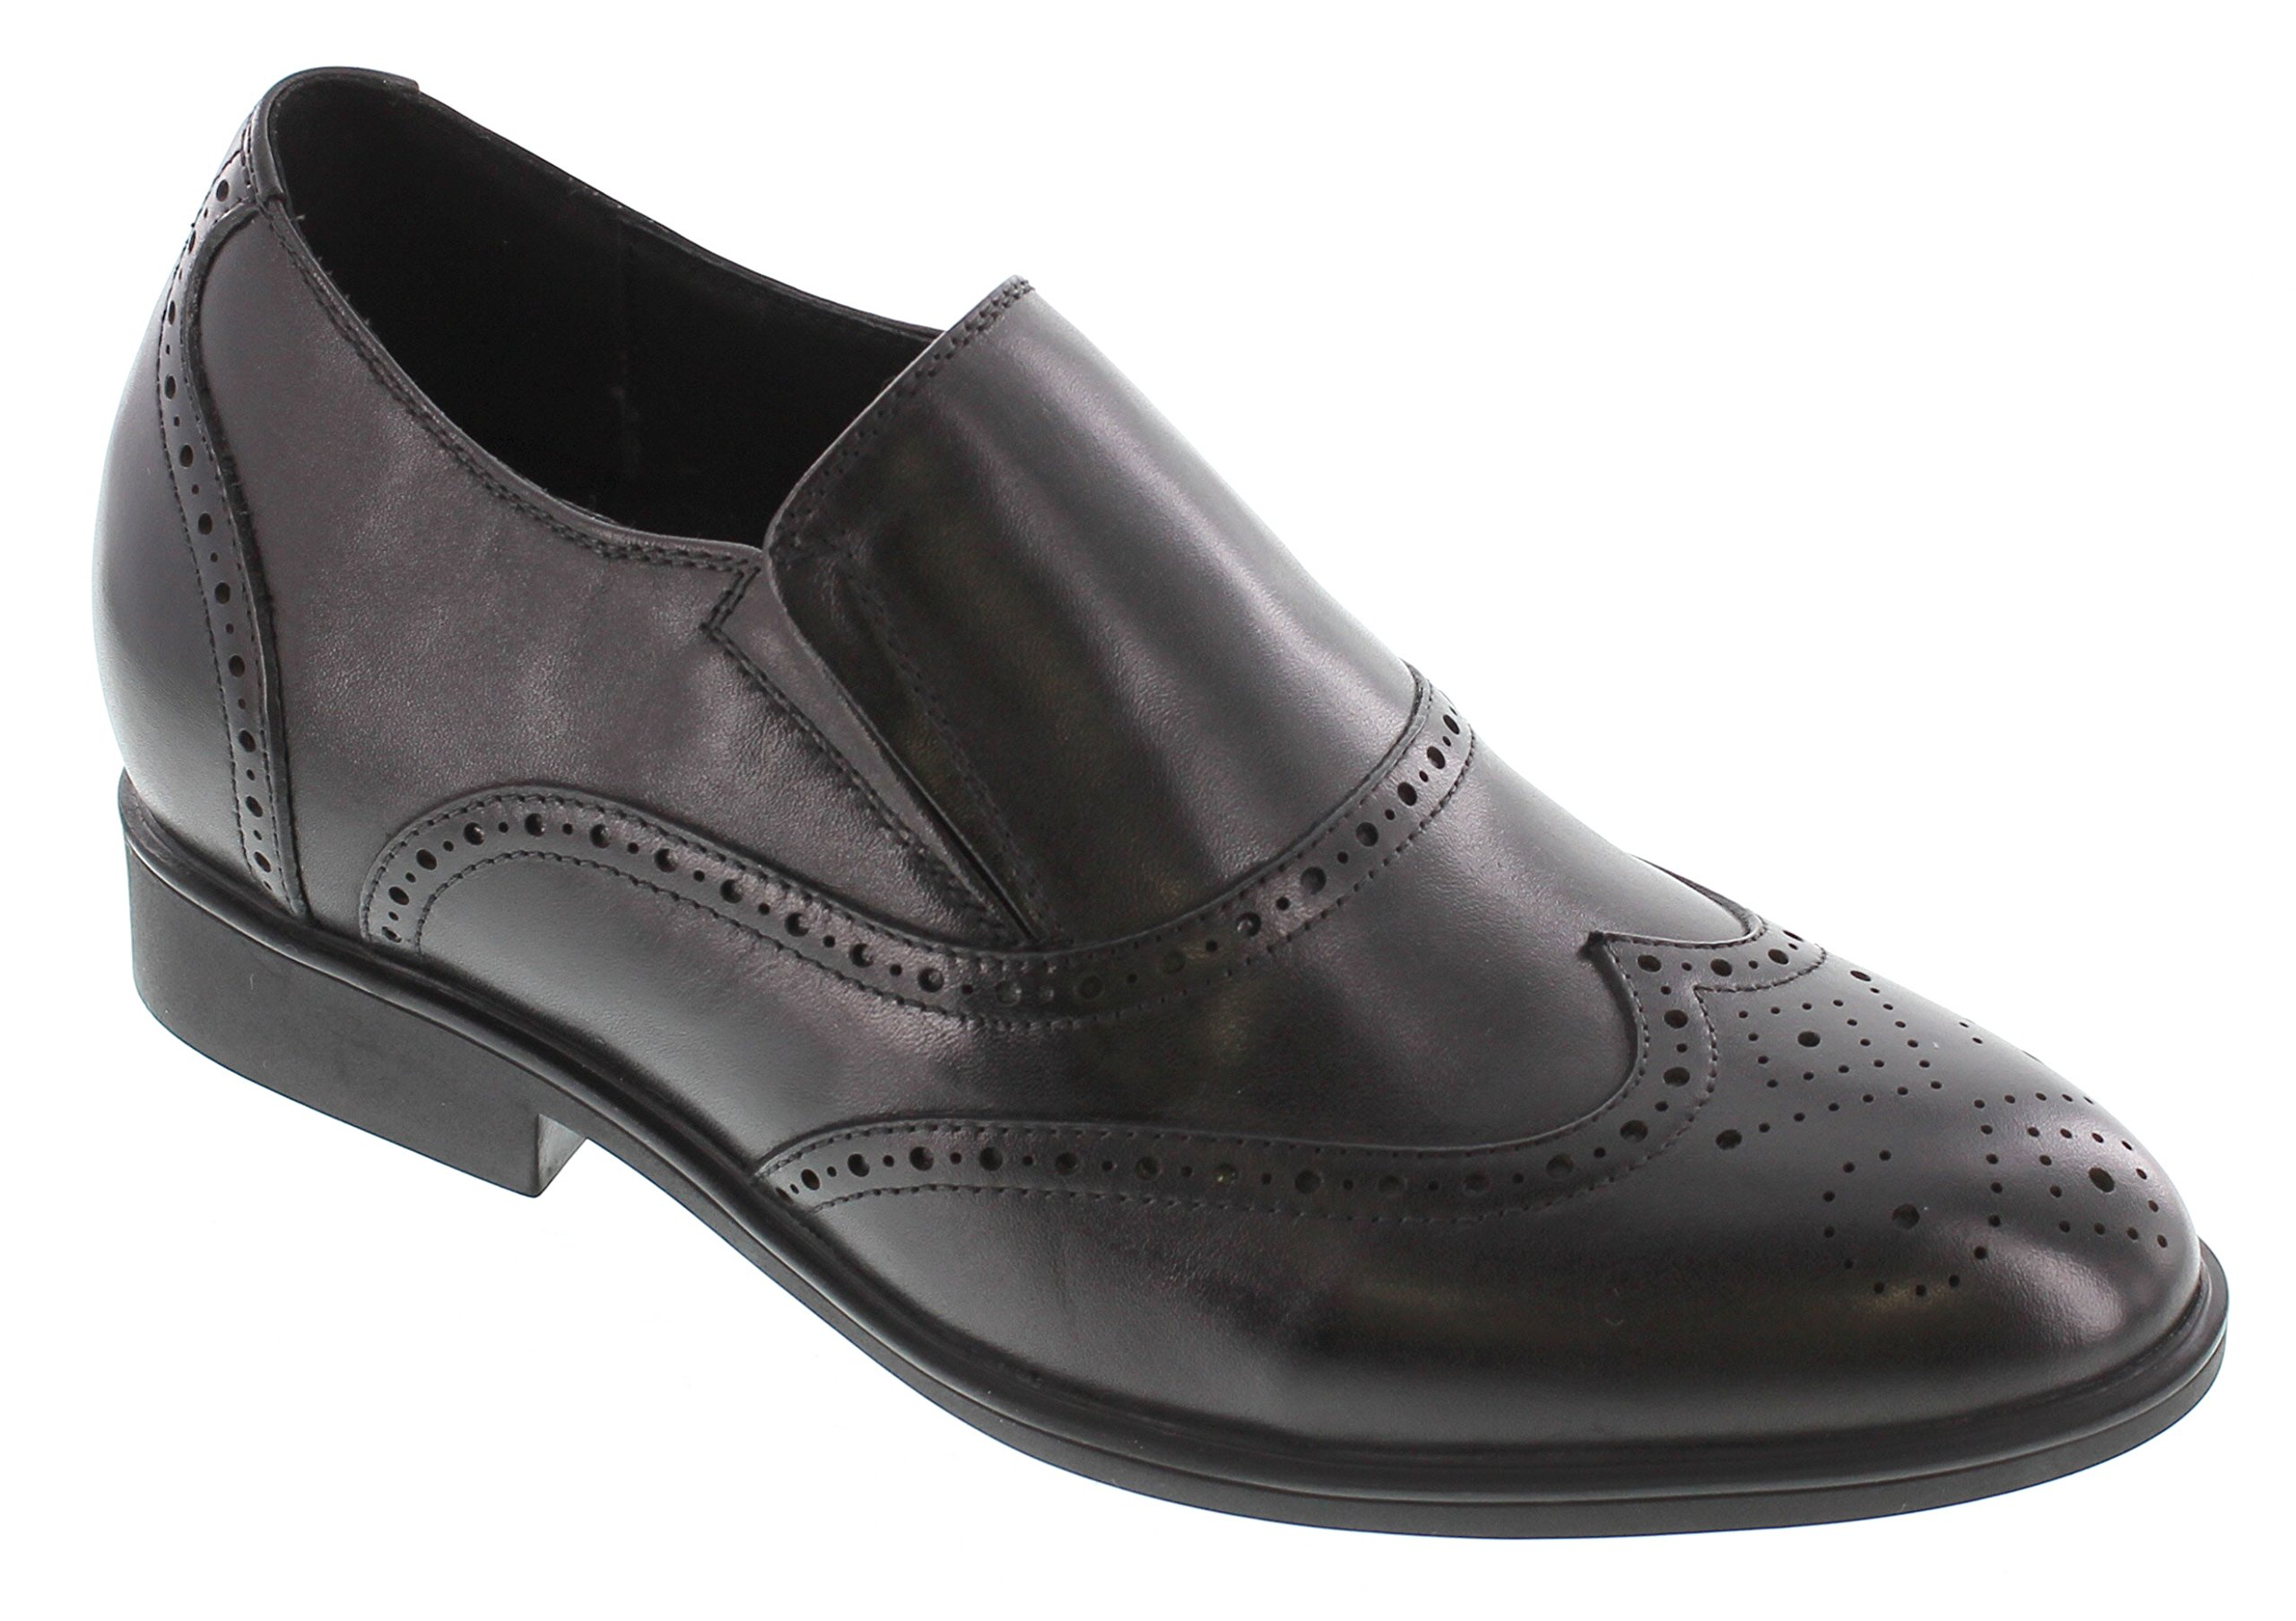 CALTO Men's Invisible Height Increasing Elevator Shoes - Black Leather Slip-on Ultra Lightweight Wing-tip Dress Loafers - 2.8 Inches Taller - G65730